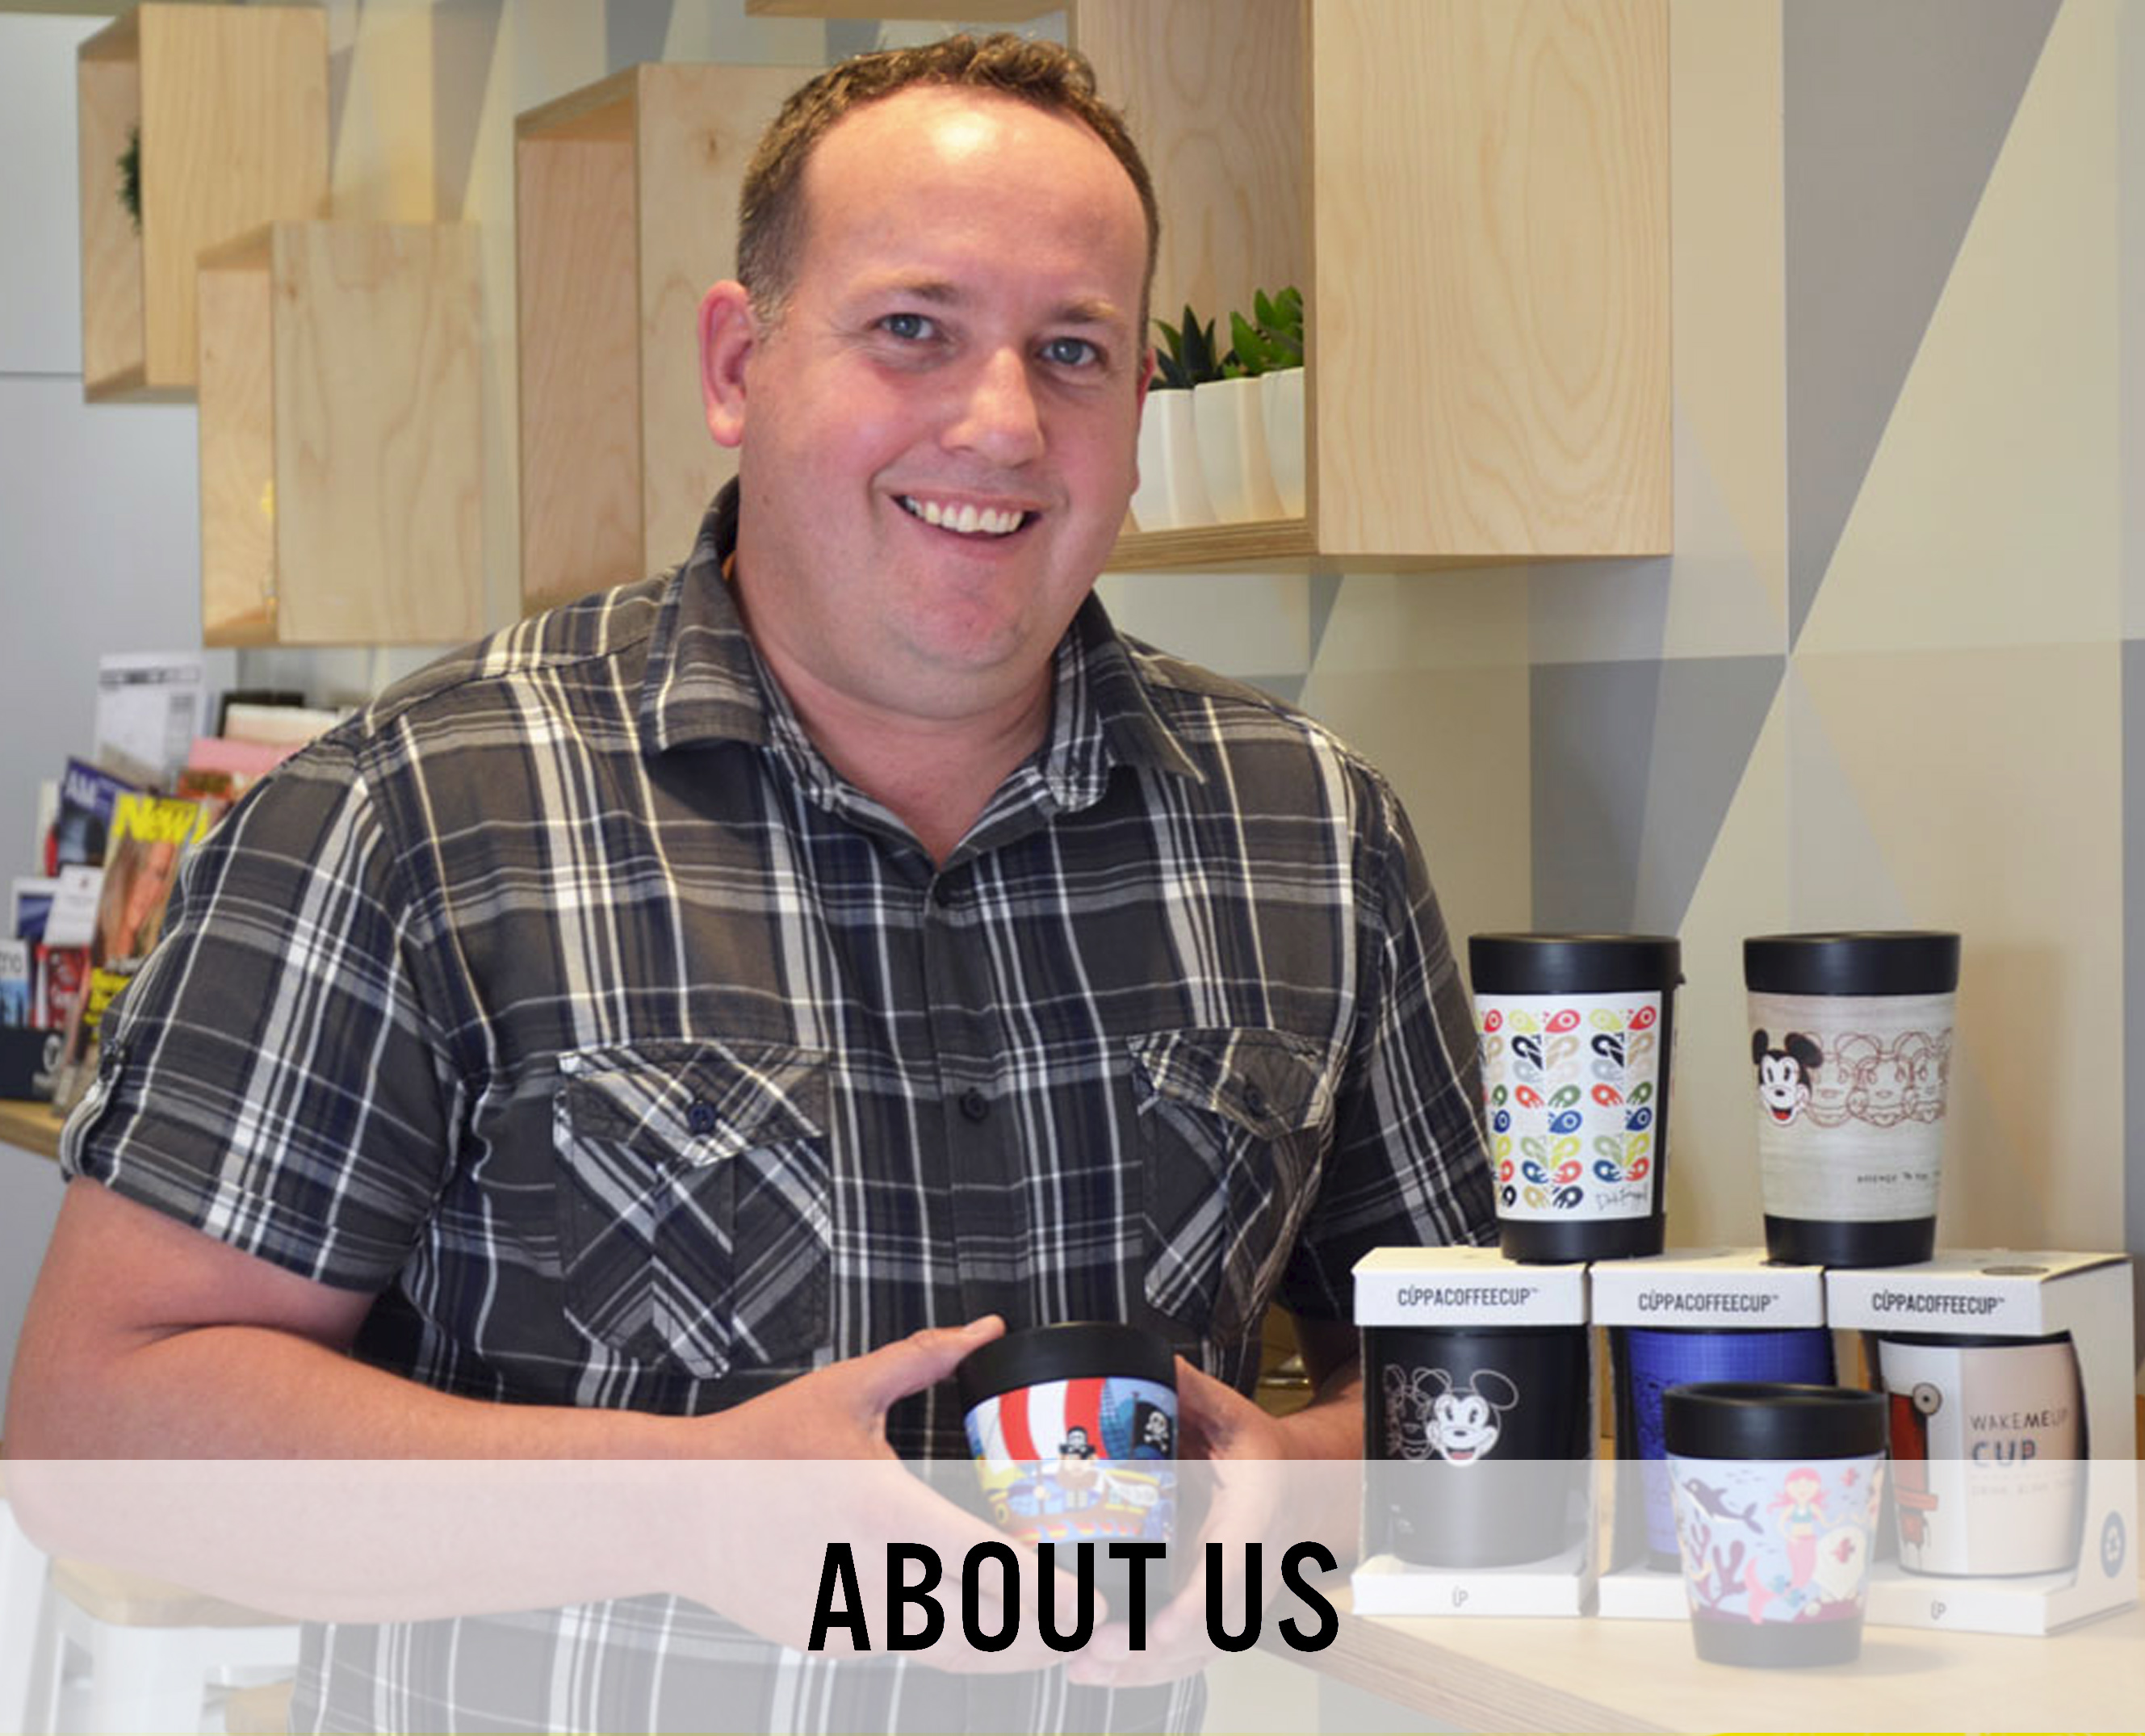 A picture of Darren Turner, General Manager of Cuppa Coffee Cup holding a Recyclable Coffee Cup